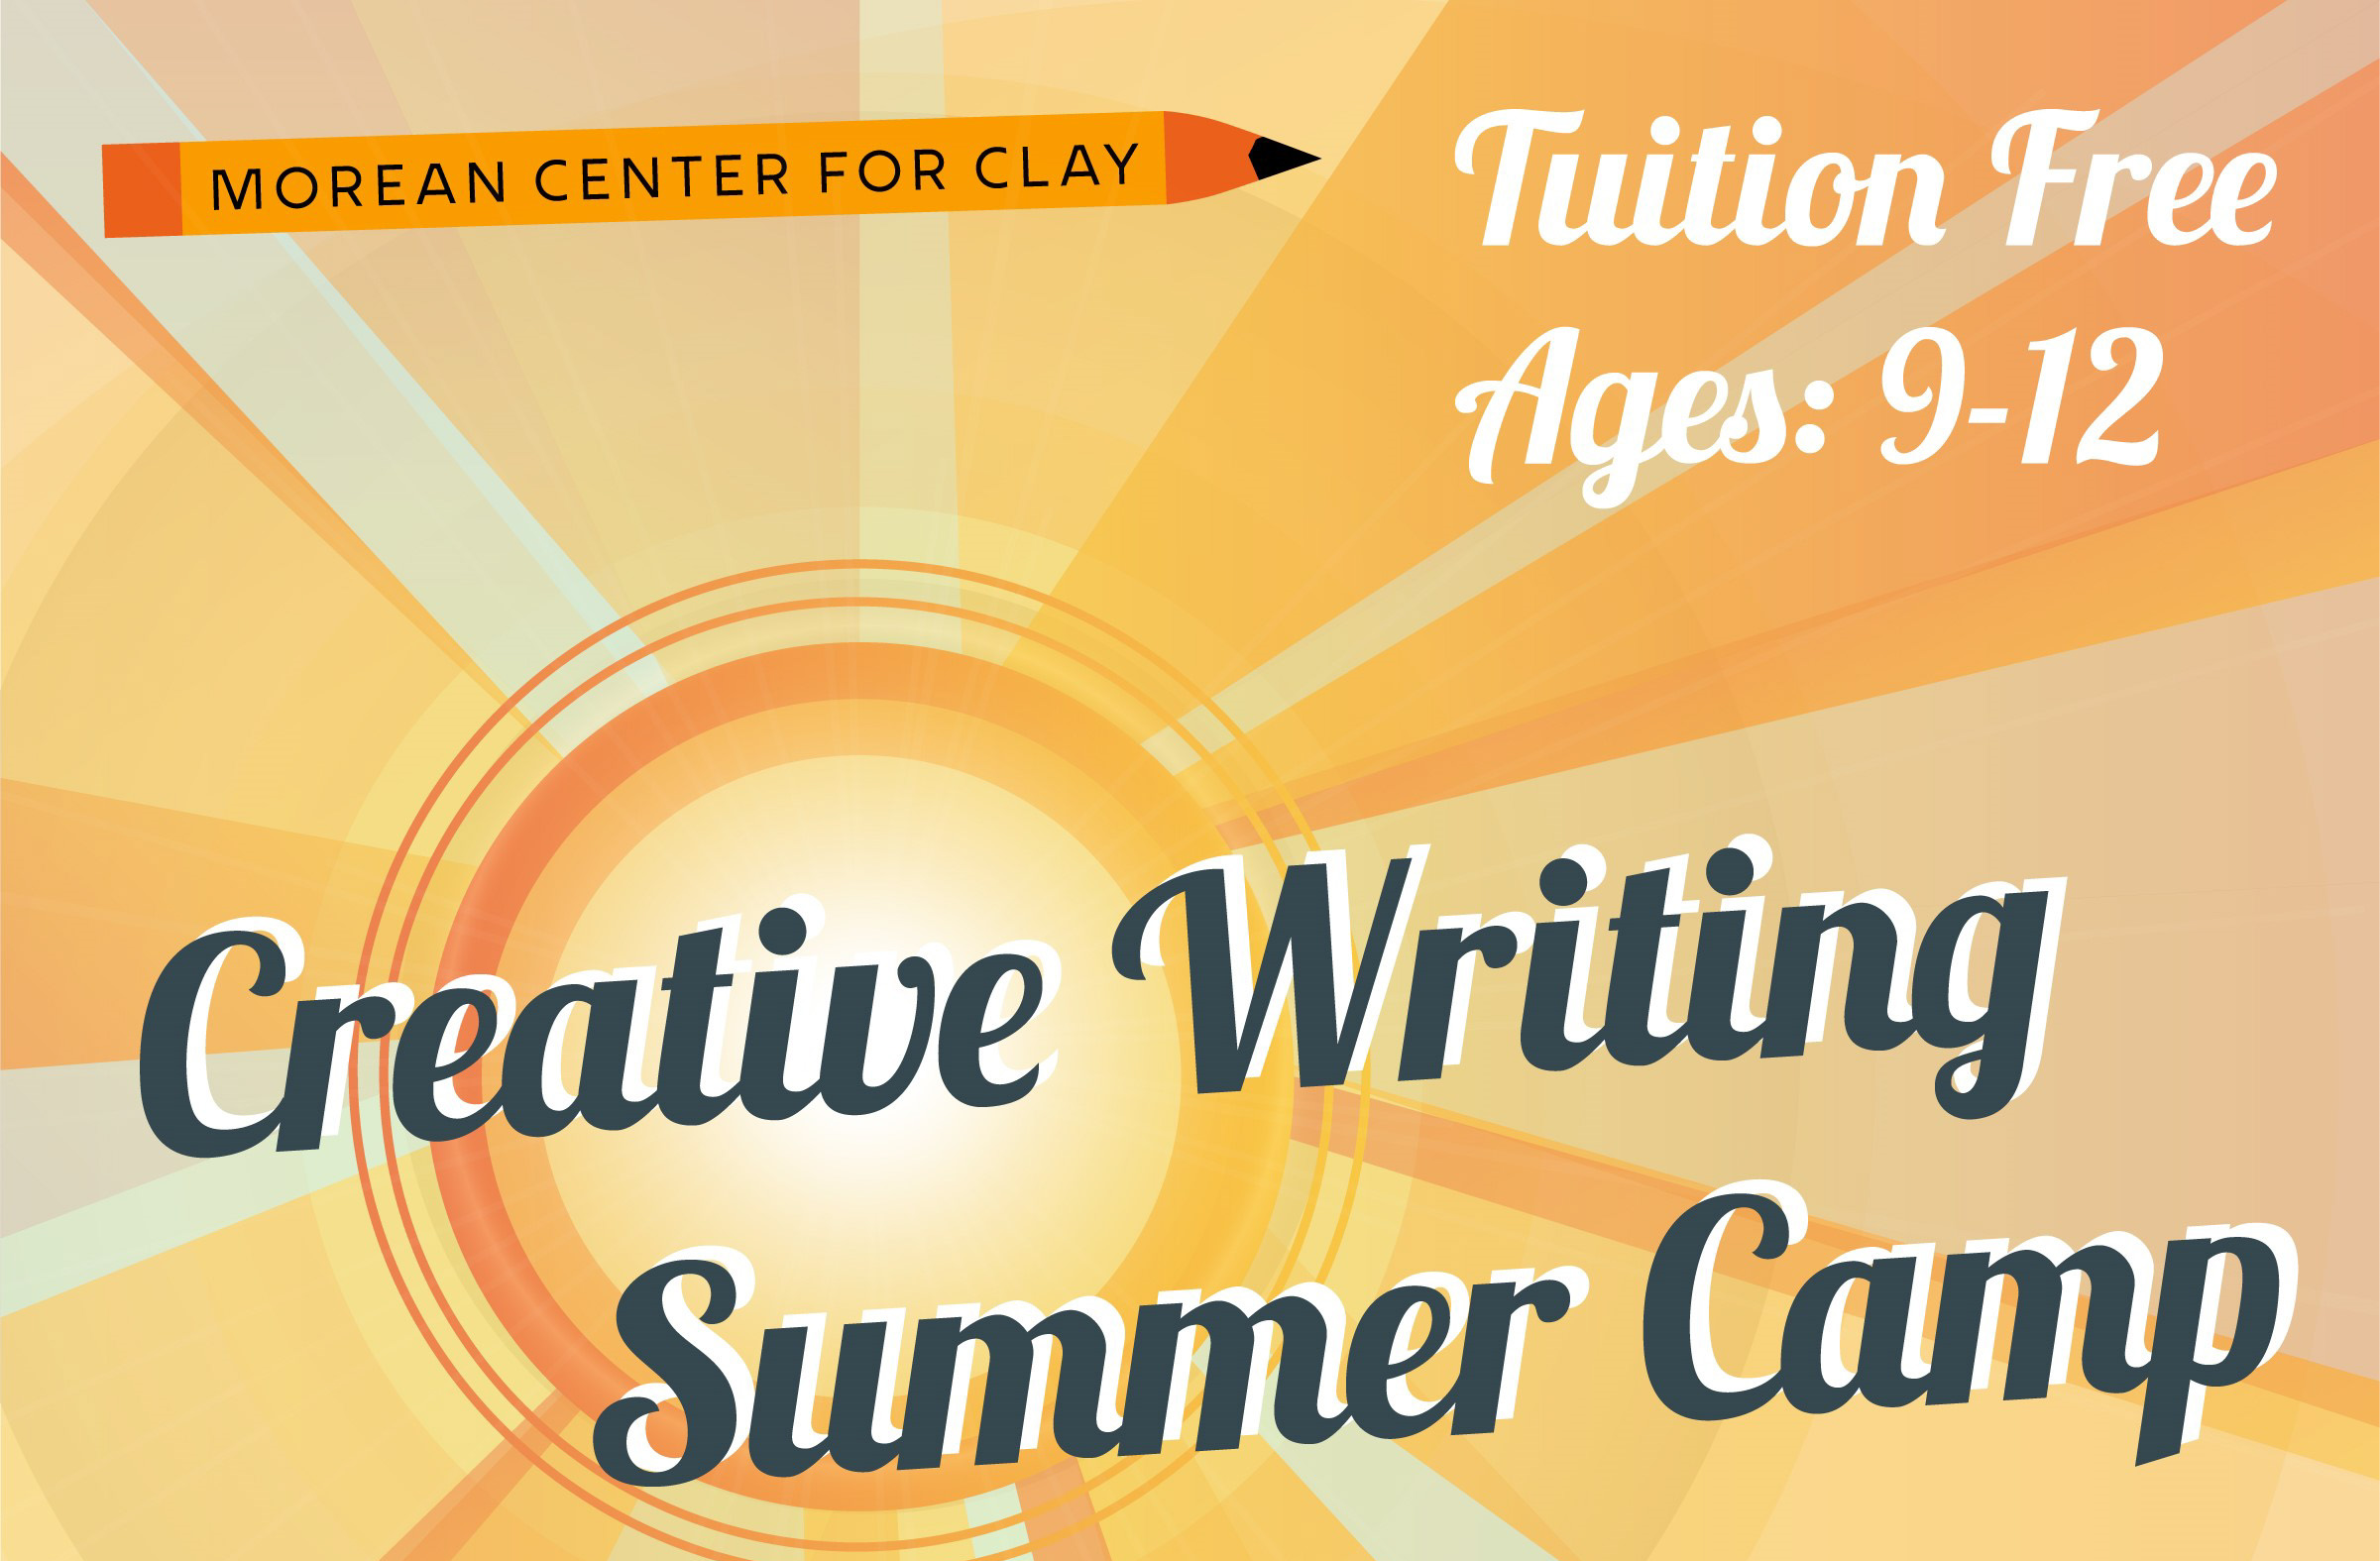 bridges summer creative writing camp Gifford family theatre's wildly popular summer youth theatre transformed into the le moyne college summer arts institute this new conservatory program has expanded on gft's theatre camp to offer additional opportunities for youth to delve into the areas of film, music (strings), and musical theatre, all on le moyne's beautiful campus.